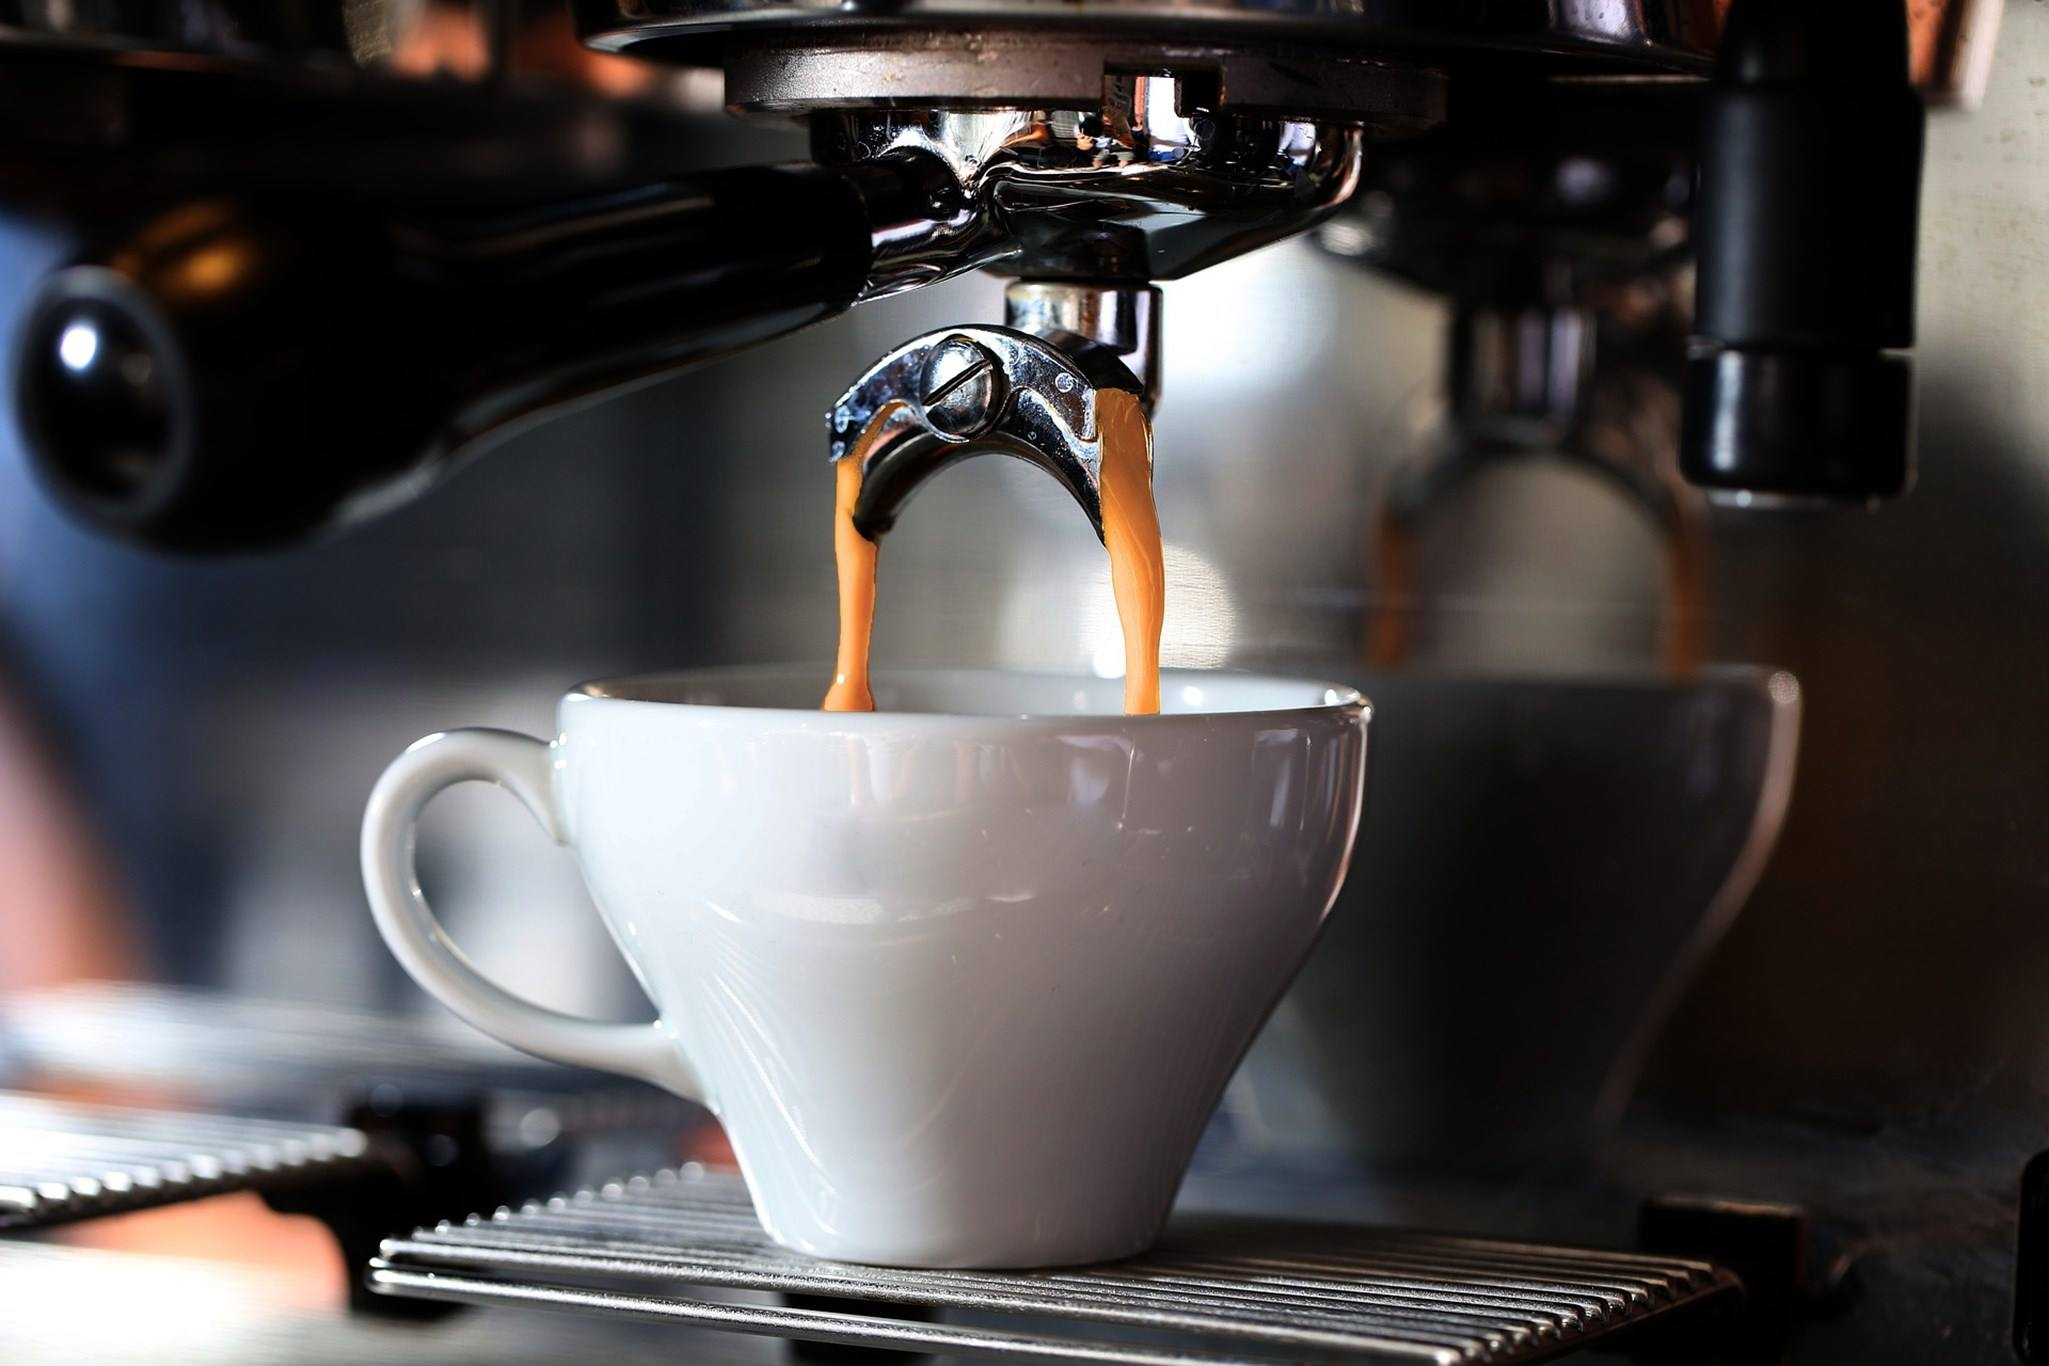 Coffee machine pouring a coffee